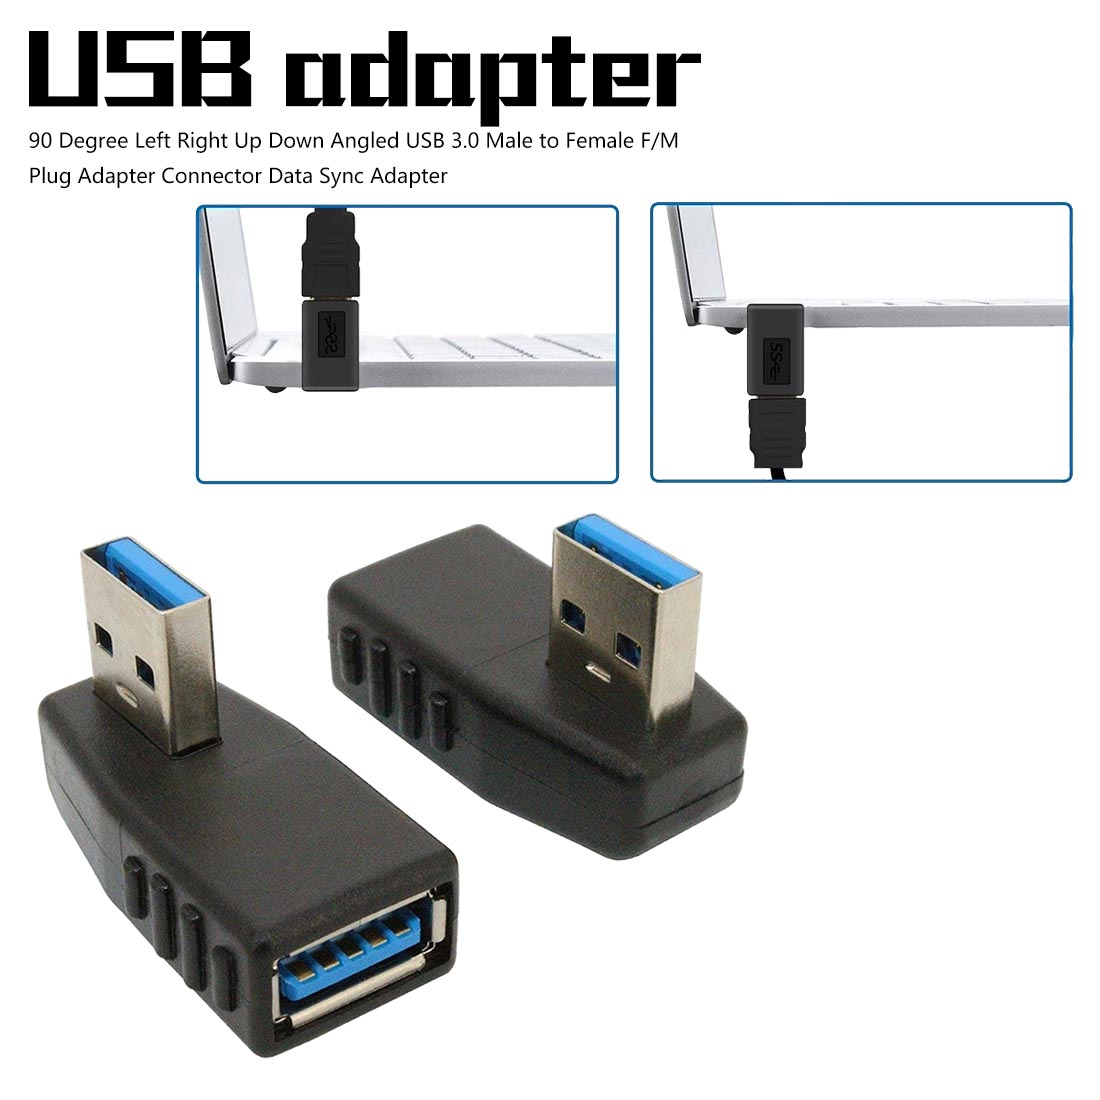 90 Degree Mini Usb Left Right Up Down Angled USB 3.0 Male To Female FM Plug Adapter Micro Usb Adapter